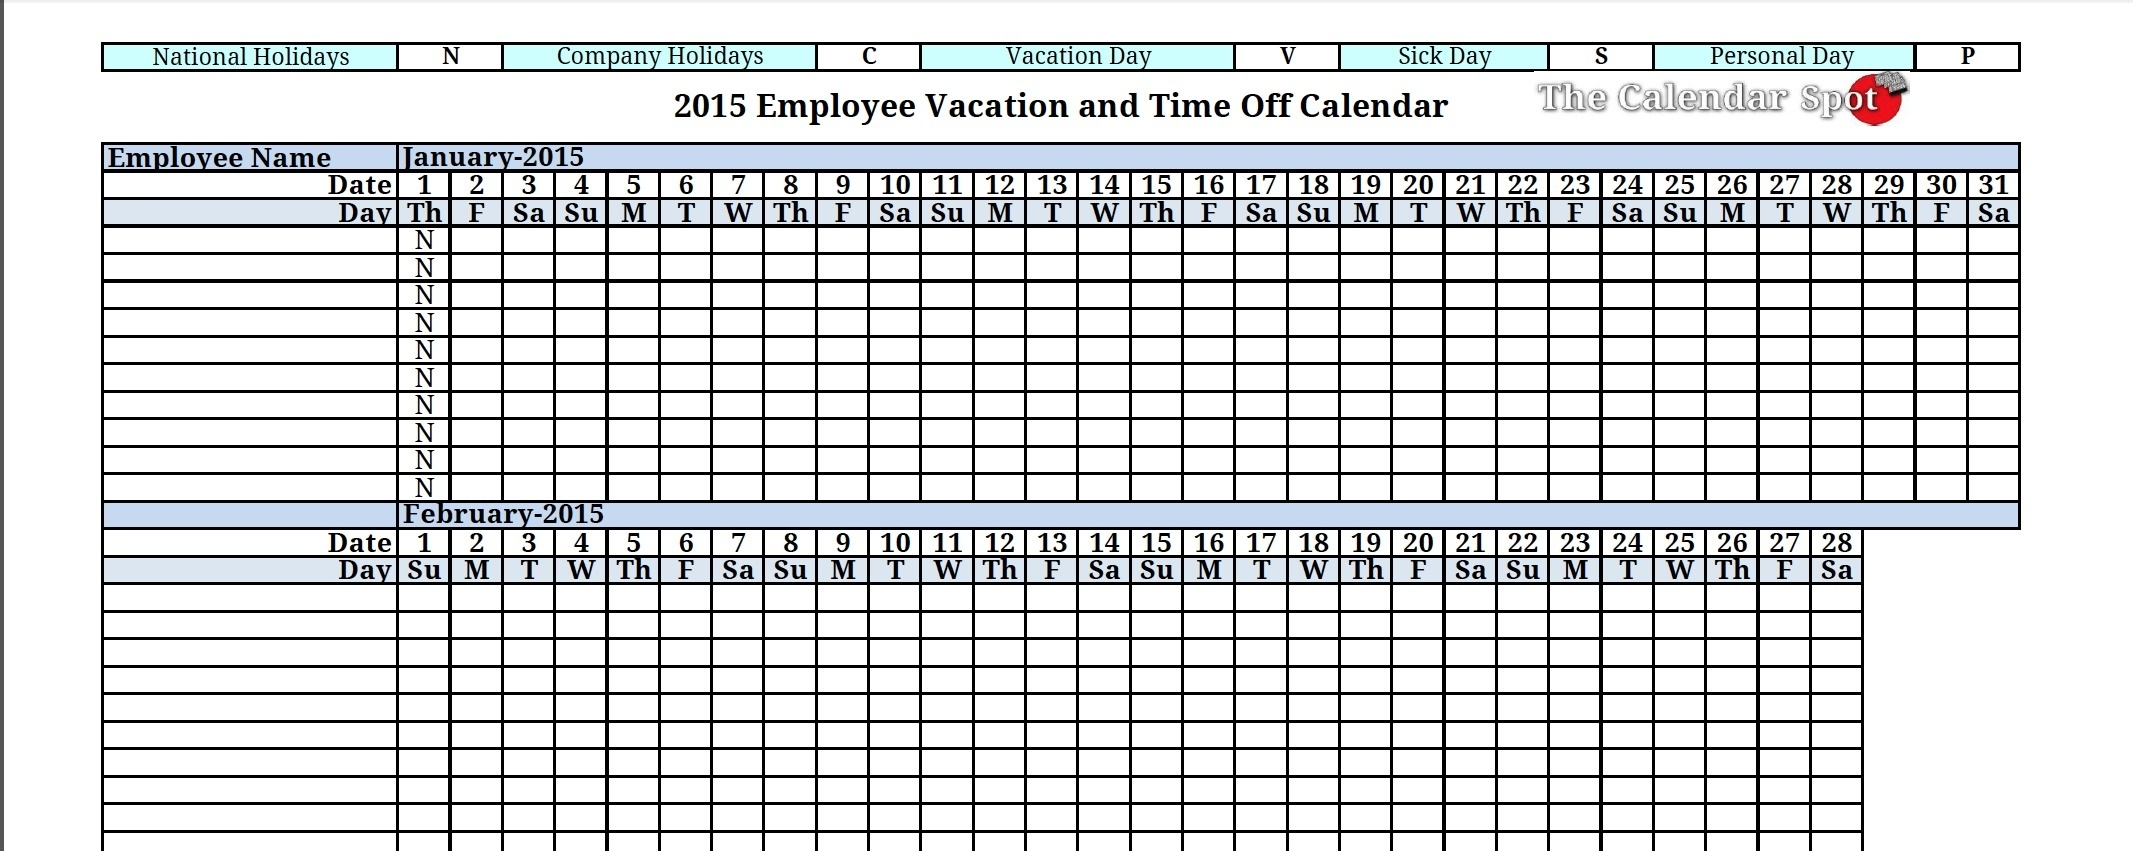 Vacation Schedule Calendar Template - Yeniscale.co  Year At A Glance Calendar - Vacation Schedule For Staff